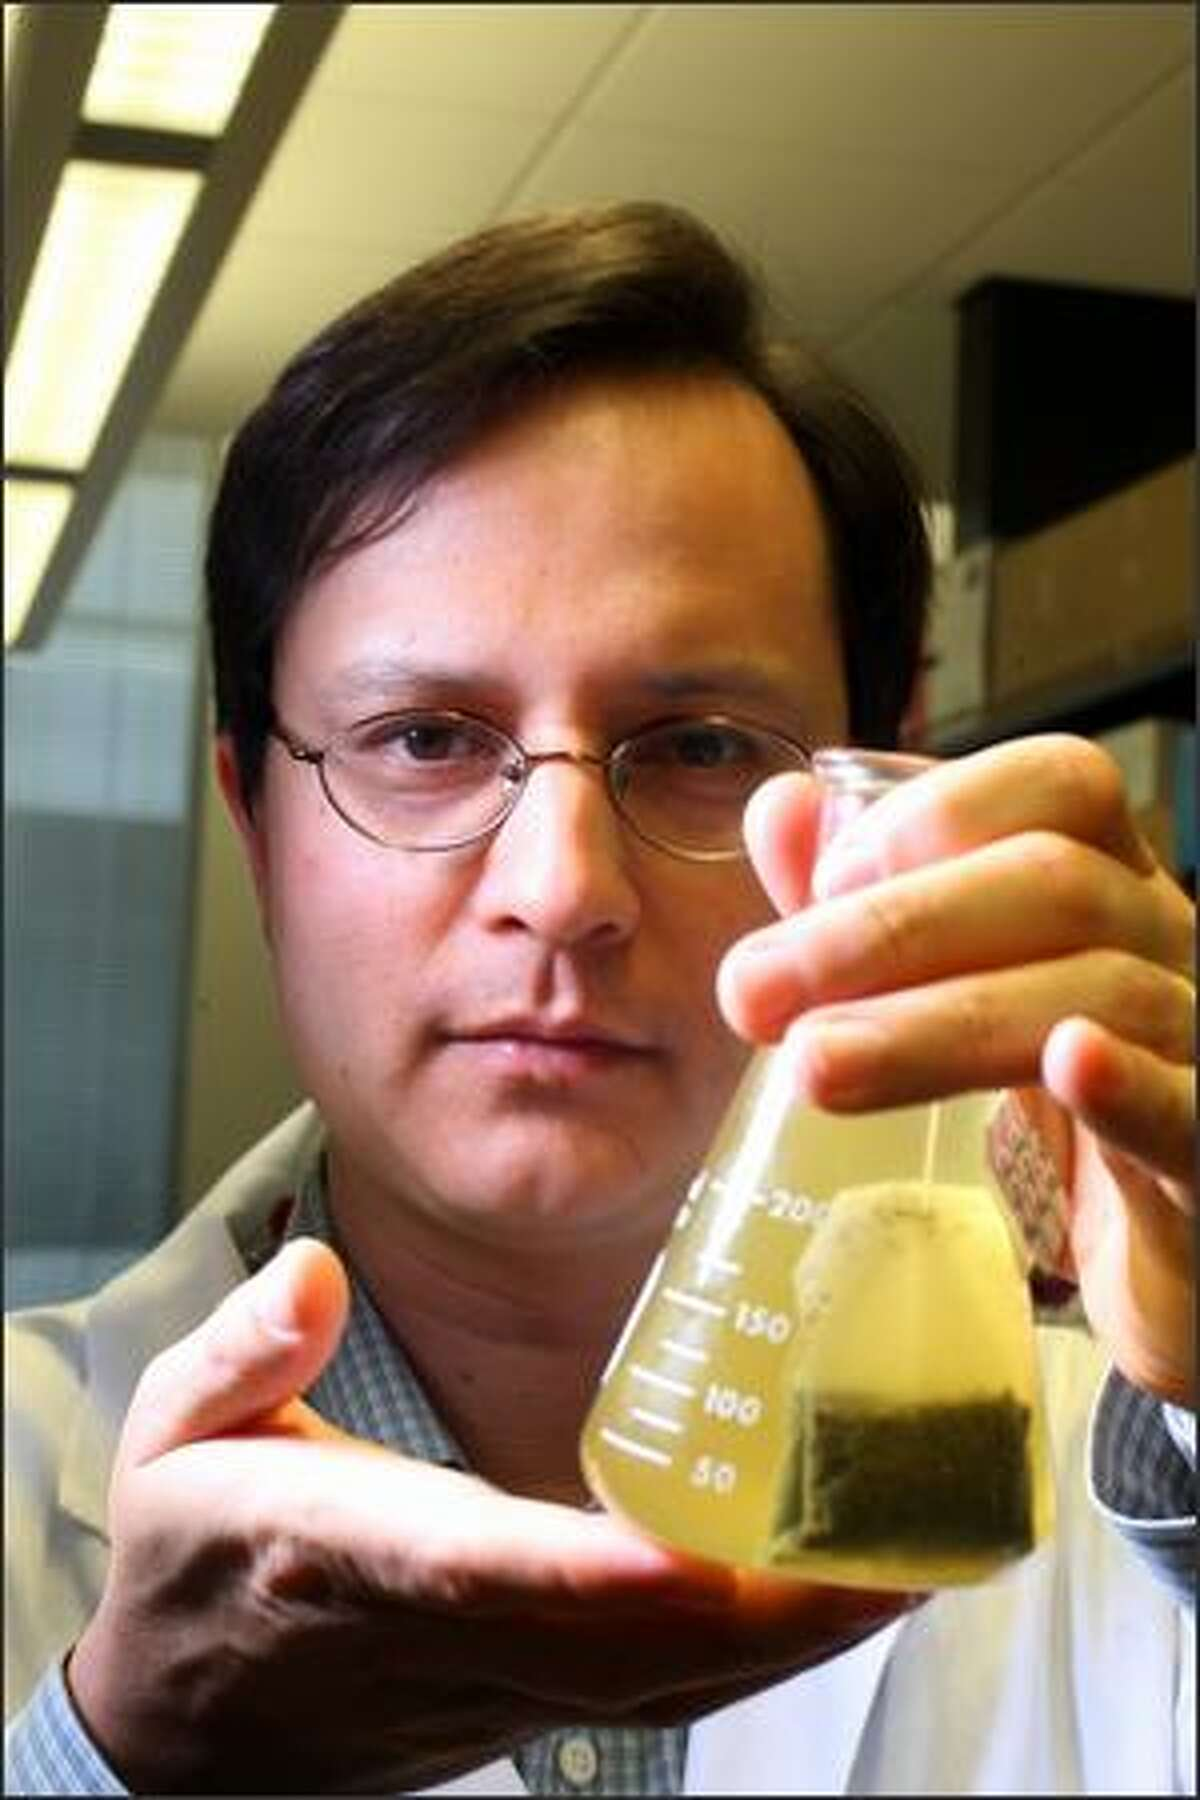 Dr. Paul Nghiem, a skin cancer expert at the UW and Fred Hutchinson Cancer Research Center, has been studying how caffeine protects skin cells and mice from developing cancer.